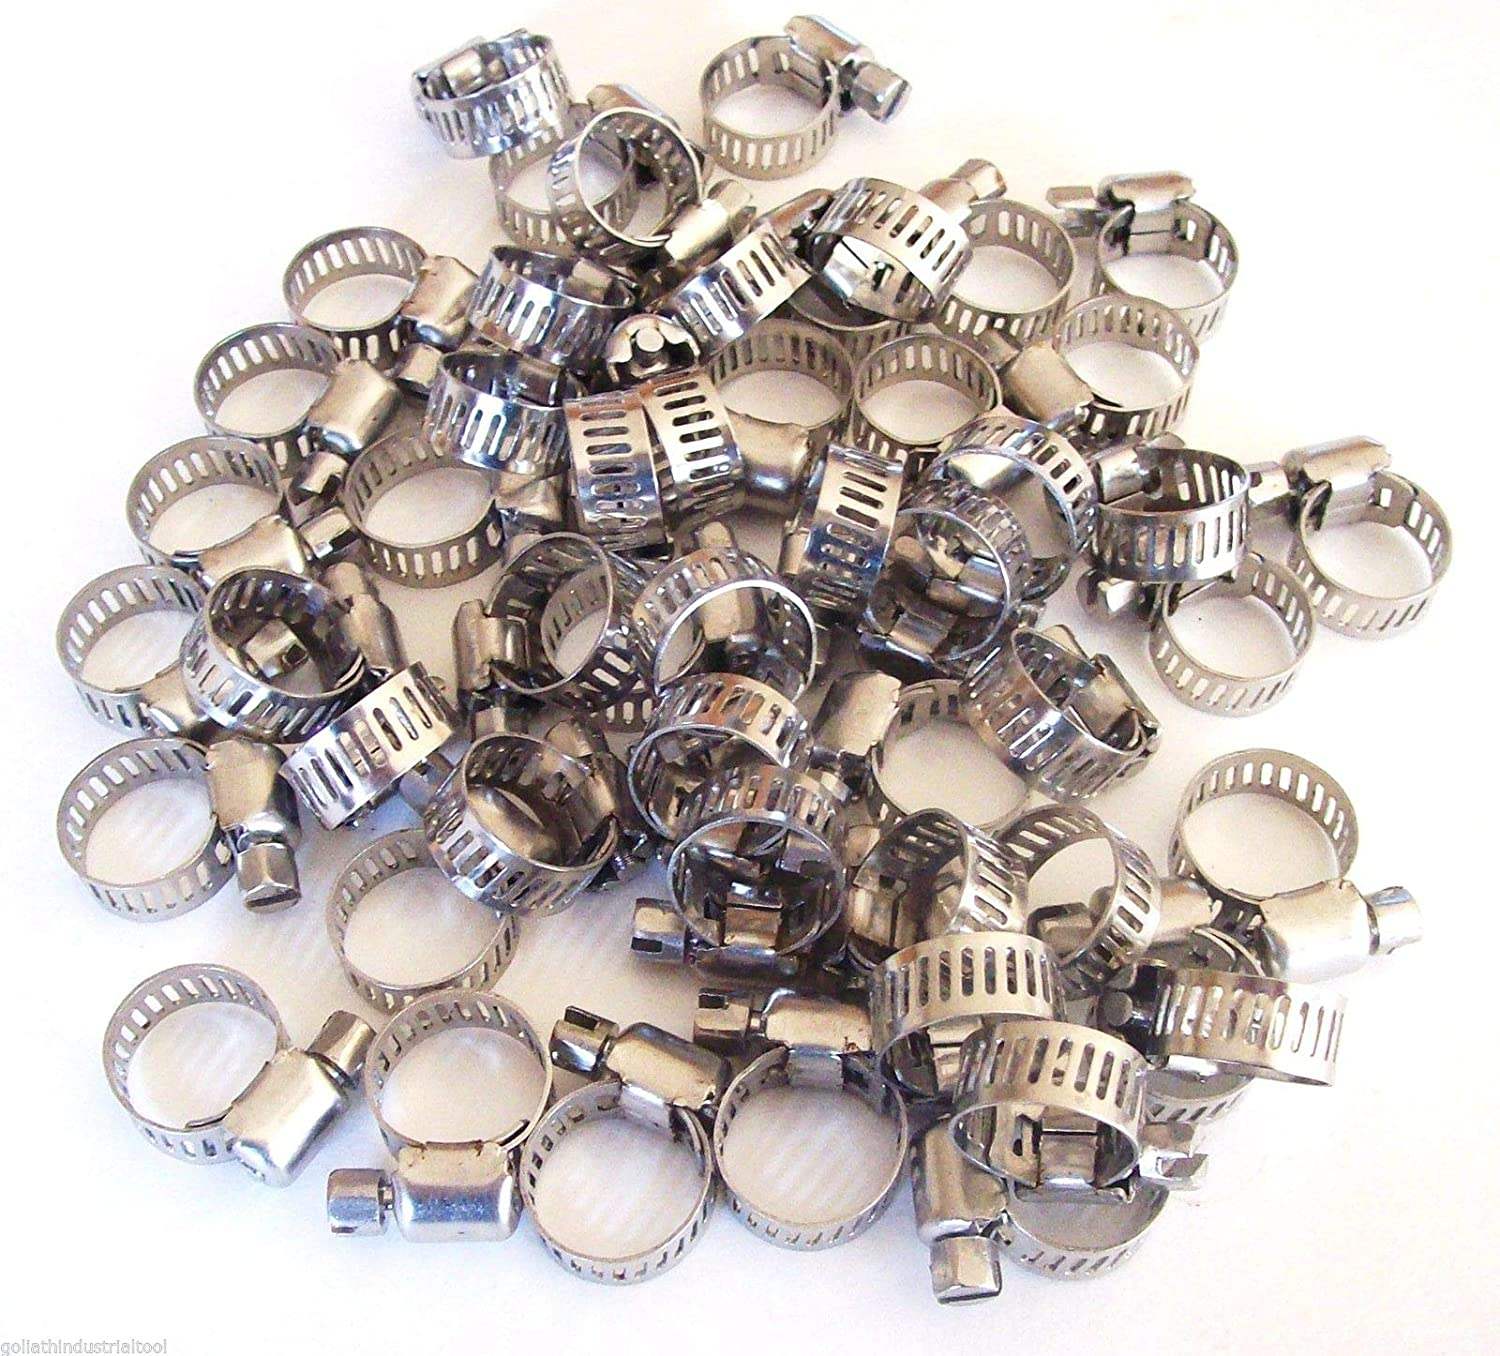 50 Super popular specialty store Brand New Finally popular brand Stainless Steel Worm Diameter Drive Clamps Hose Ran